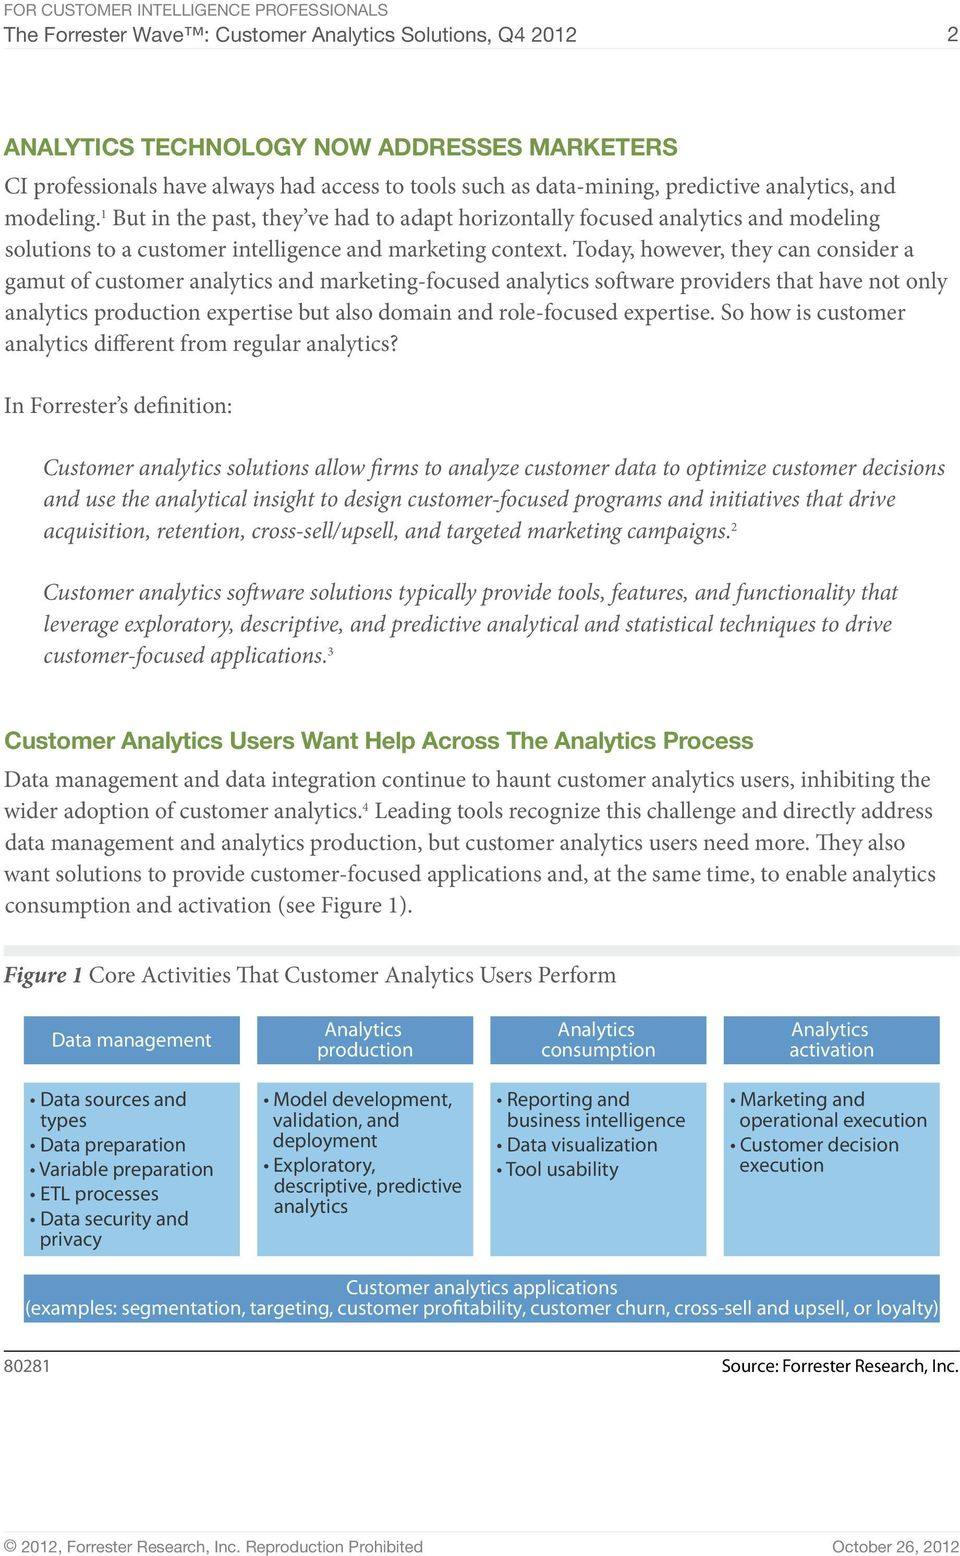 Today, however, they can consider a gamut of customer analytics and marketing-focused analytics software providers that have not only analytics production expertise but also domain and role-focused